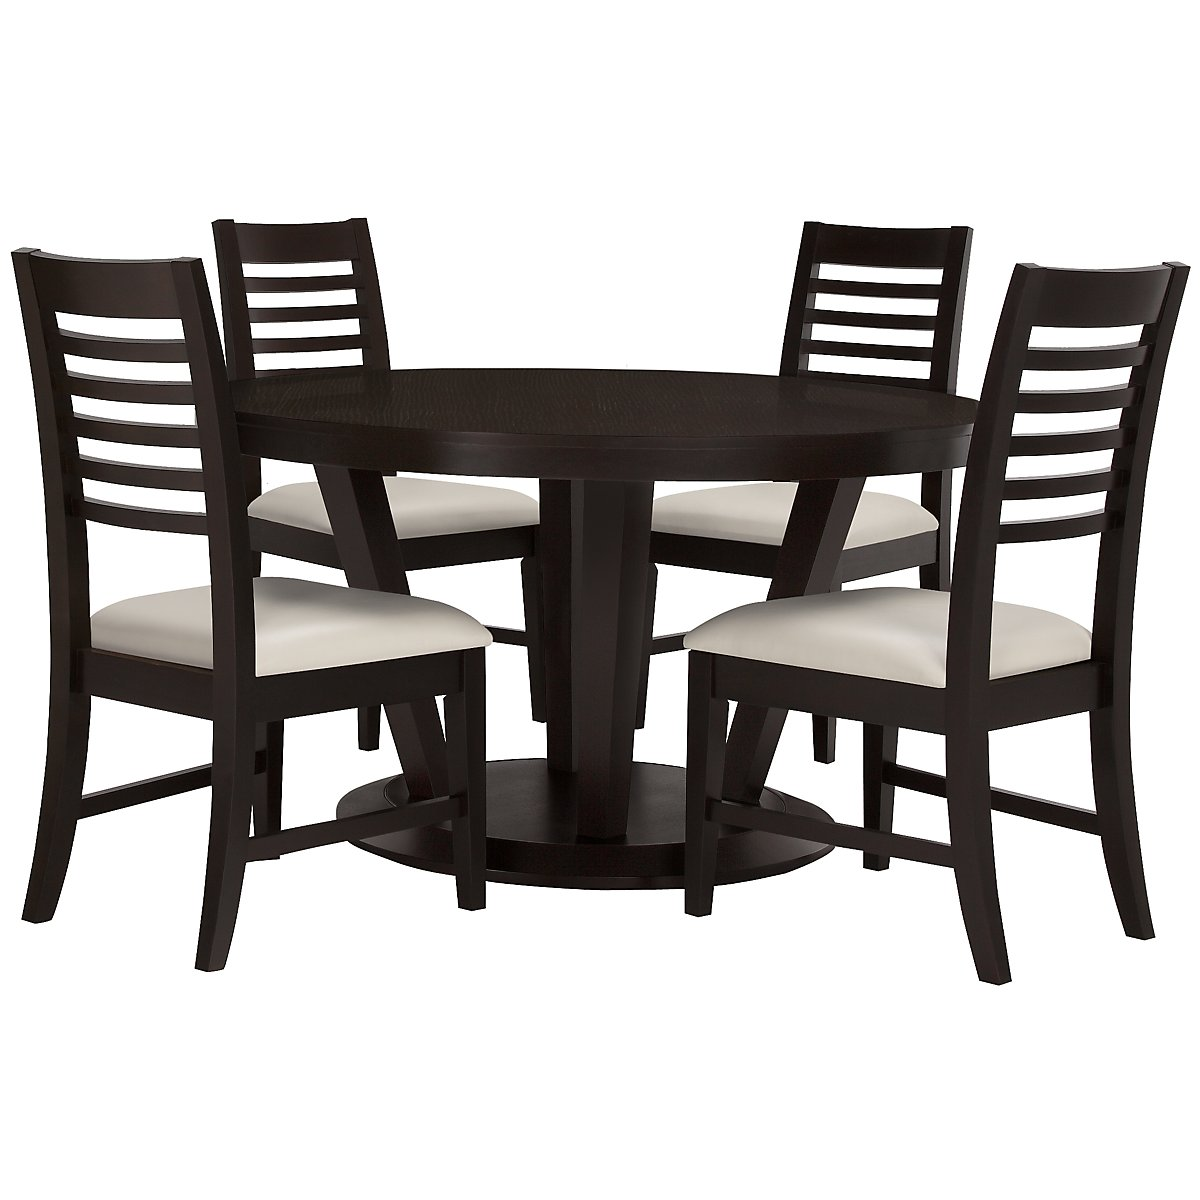 Encore2 Dark Tone Round Table & 4 Slat Chairs